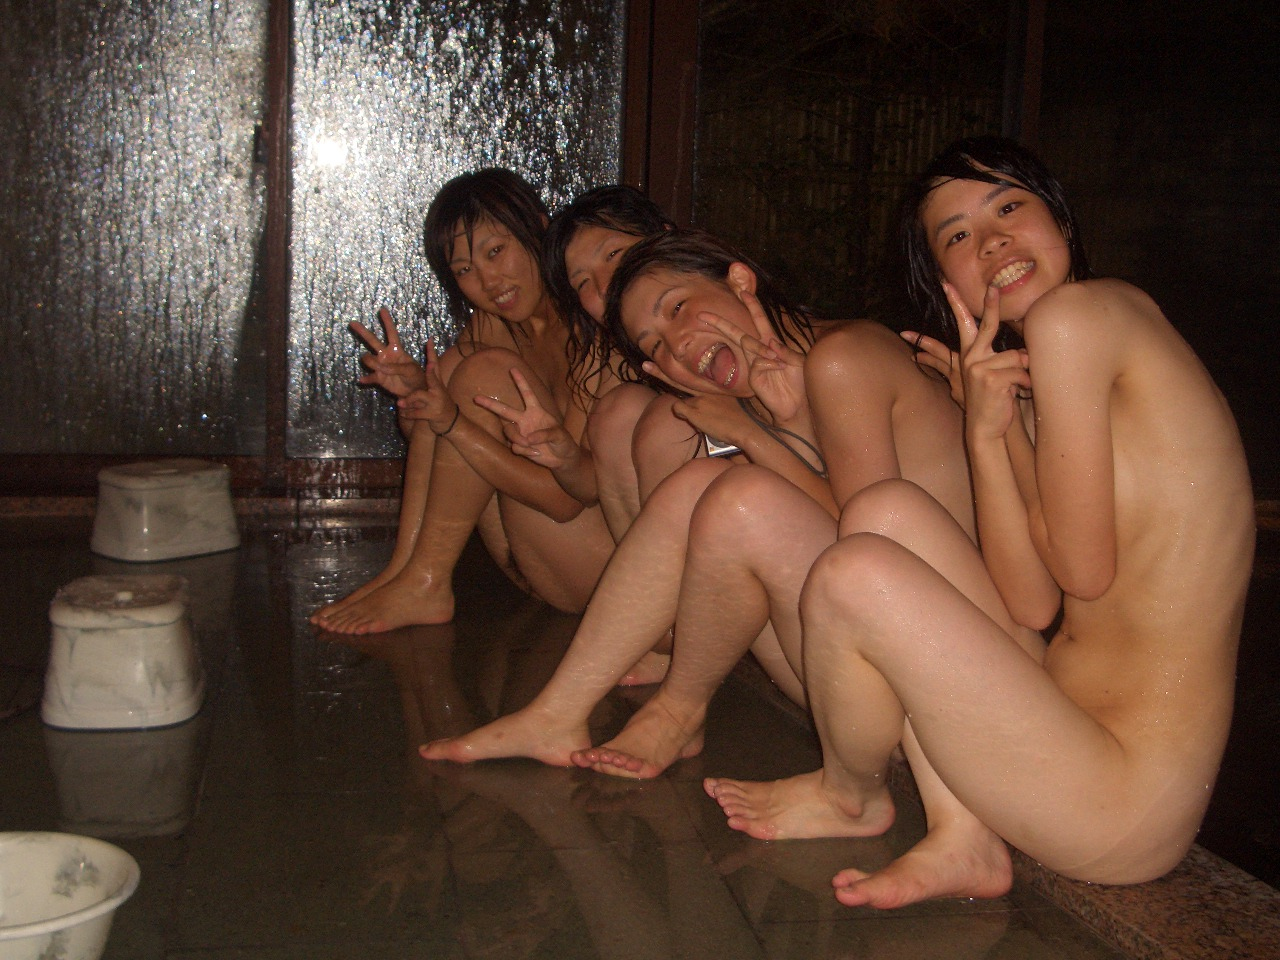 Japanese Schoolgirls leaked Incoming search terms: amateur japanese picture; nude leaked ...